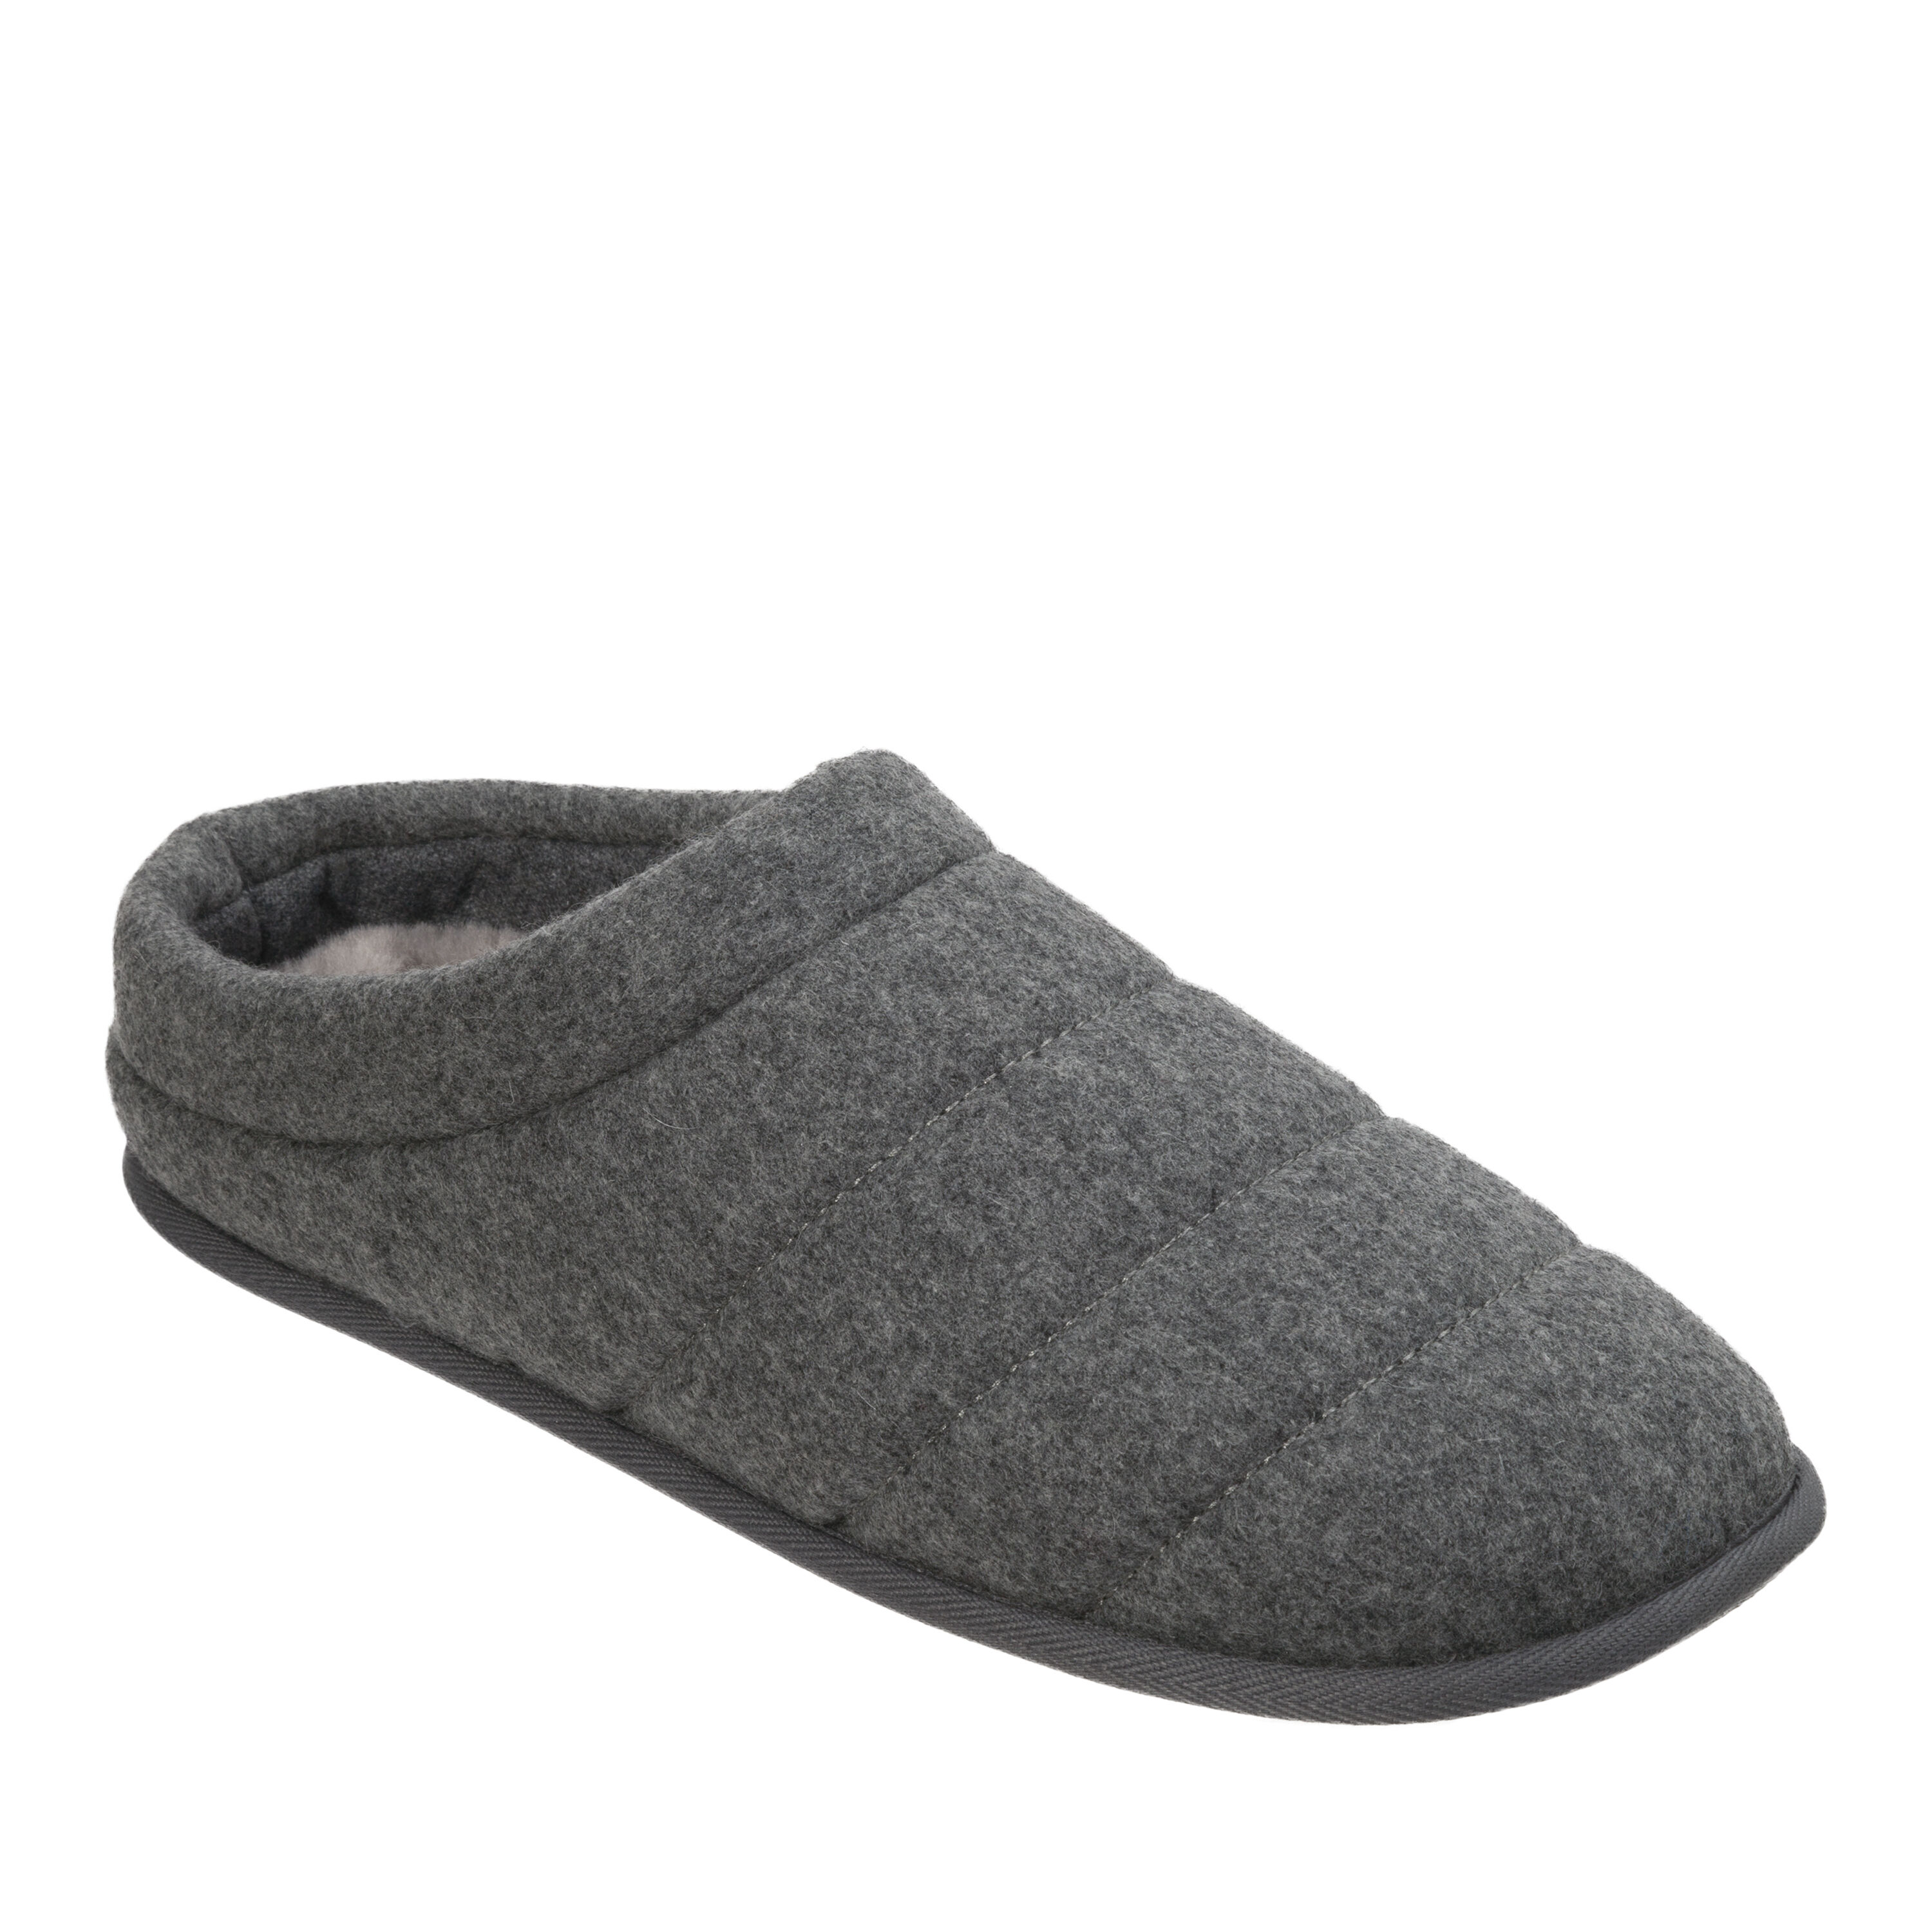 Dearfoams Men's Knit Clog With Rib Knit Cuff Slipper Slippers Clothing, Shoes & Accessories